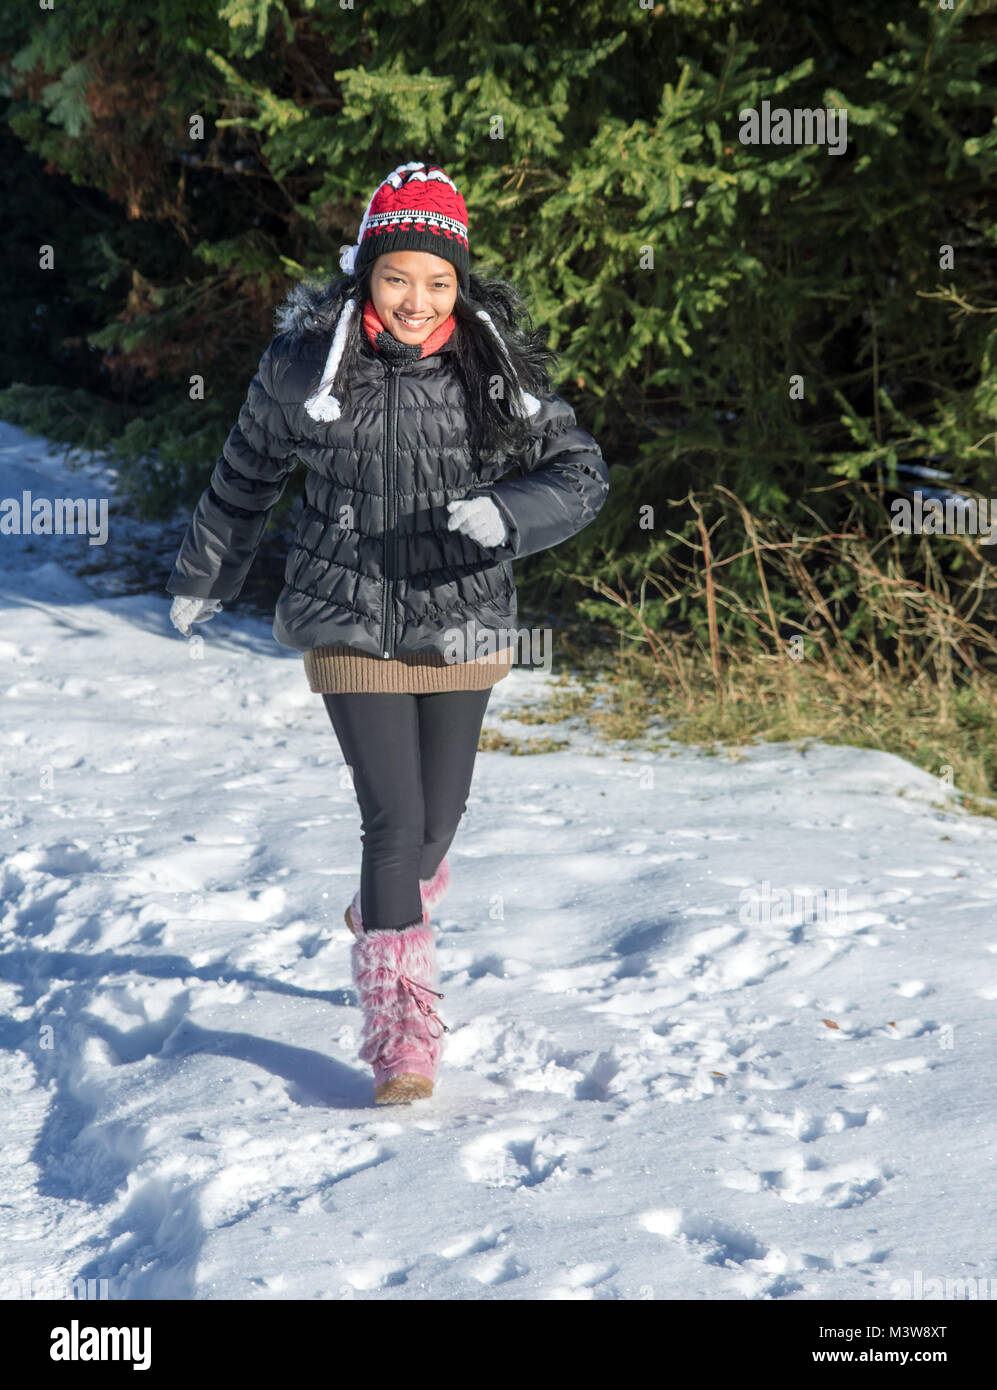 A cheerful woman running in a snowy nature. A joyful girl in winter clothes runs on snow. Outdoor fun in winter. - Stock Image